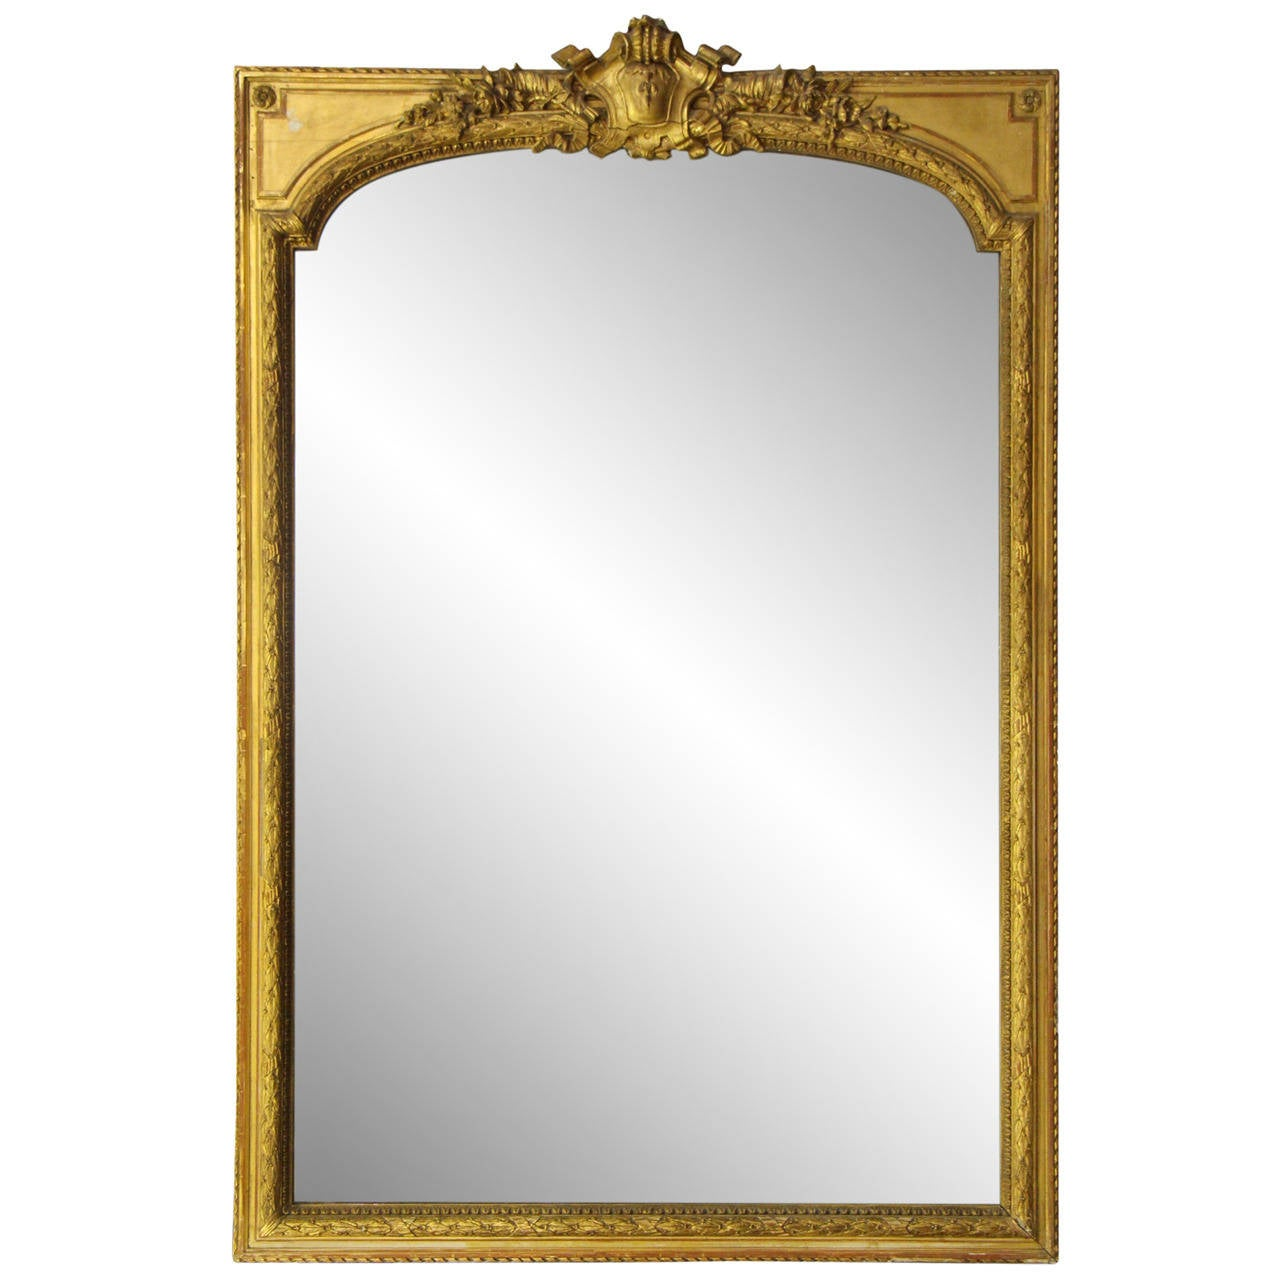 Arched gilt mirror at 1stdibs - Late 1800s French Gold Gilt Ornate Mirror 1